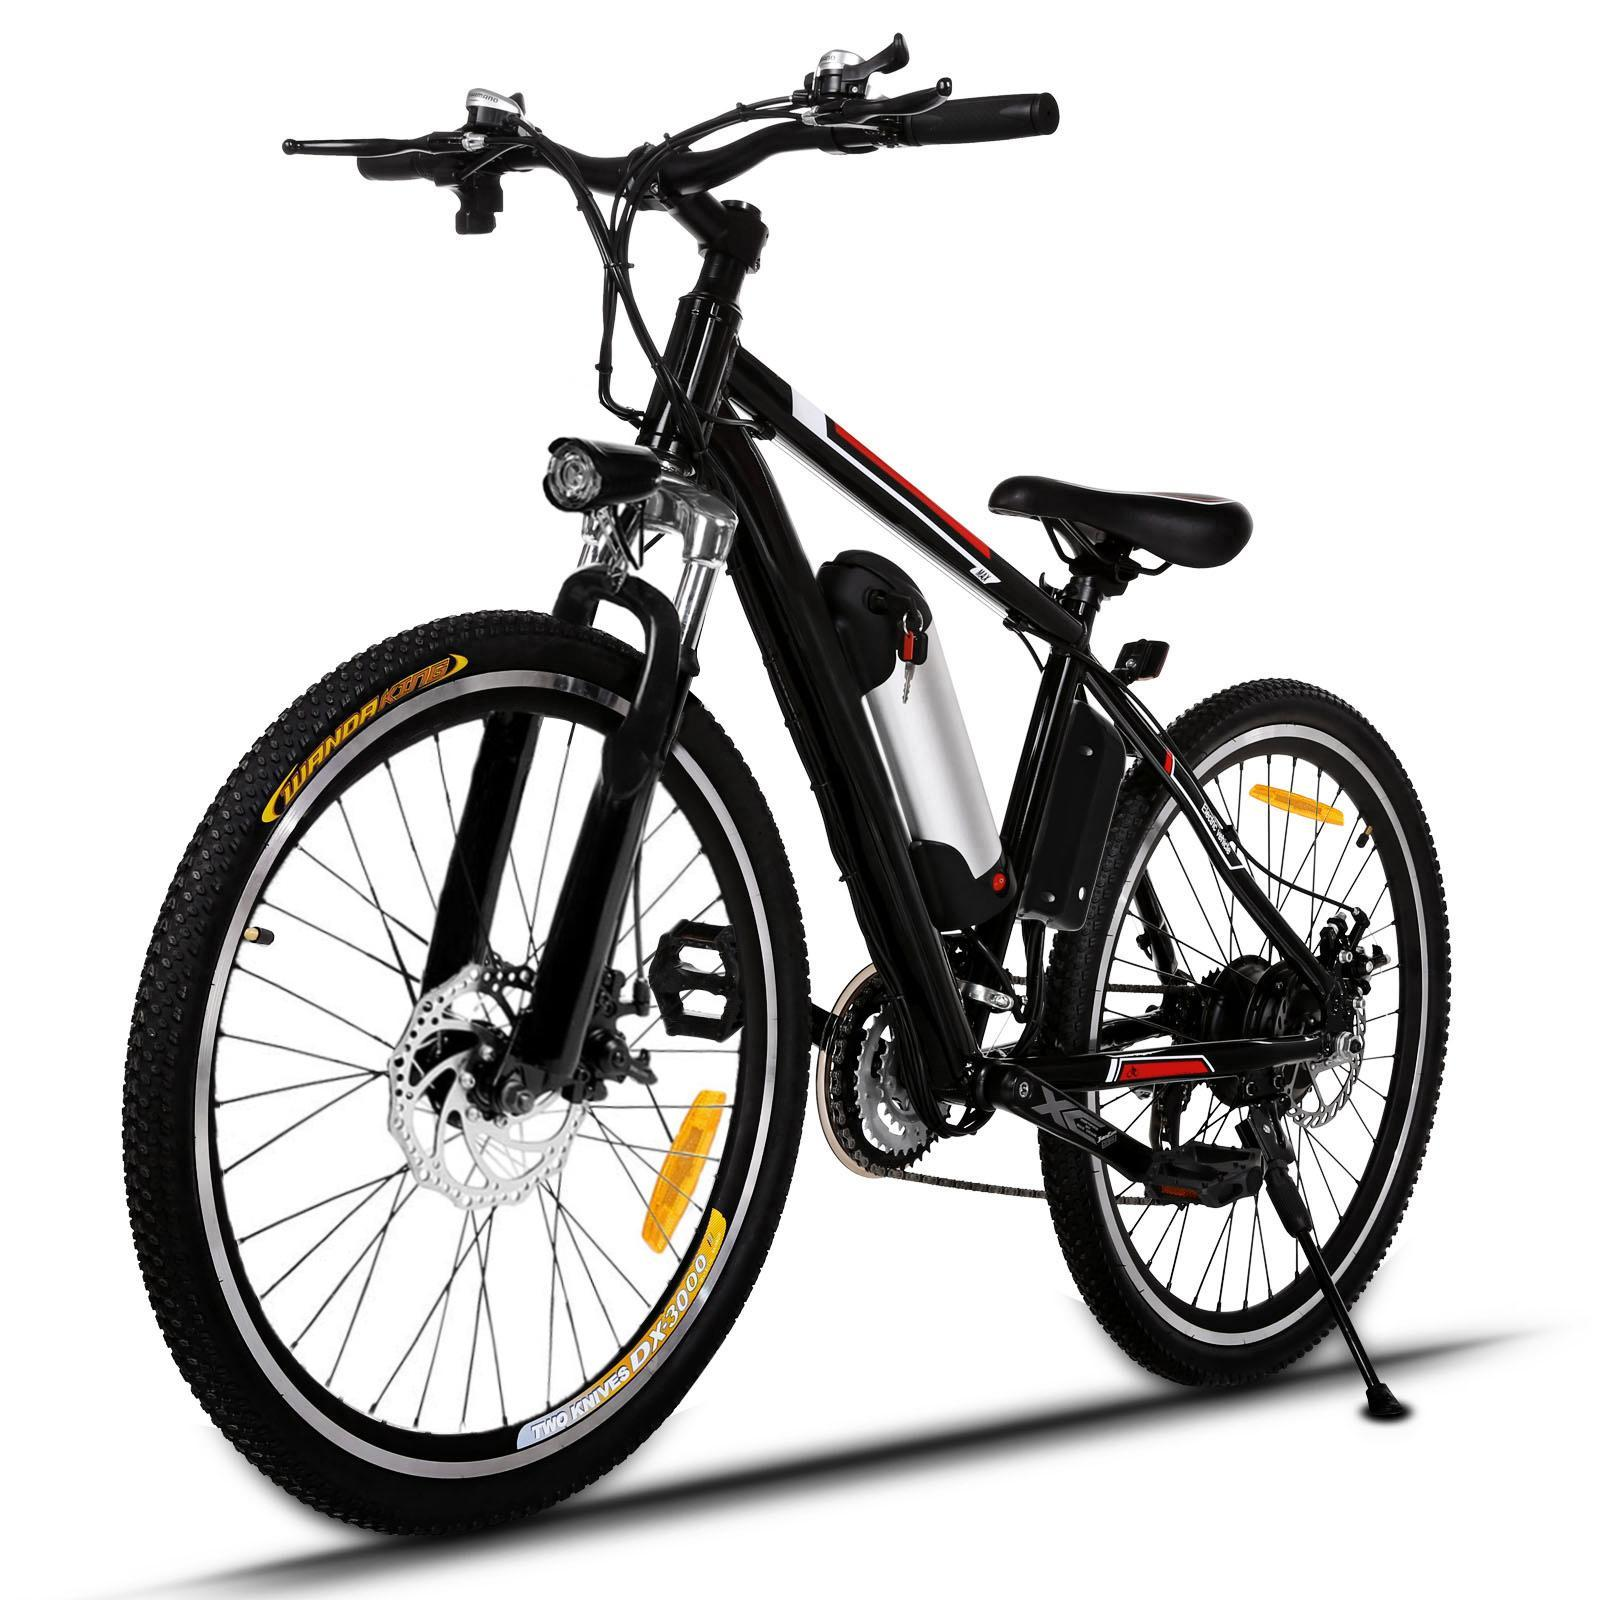 ANCHEER E-bike Electric Mountain Bike with 36V, 8AH Removable Lithium-Ion Battery 250W Electric Bike for Adults with Battery Charger